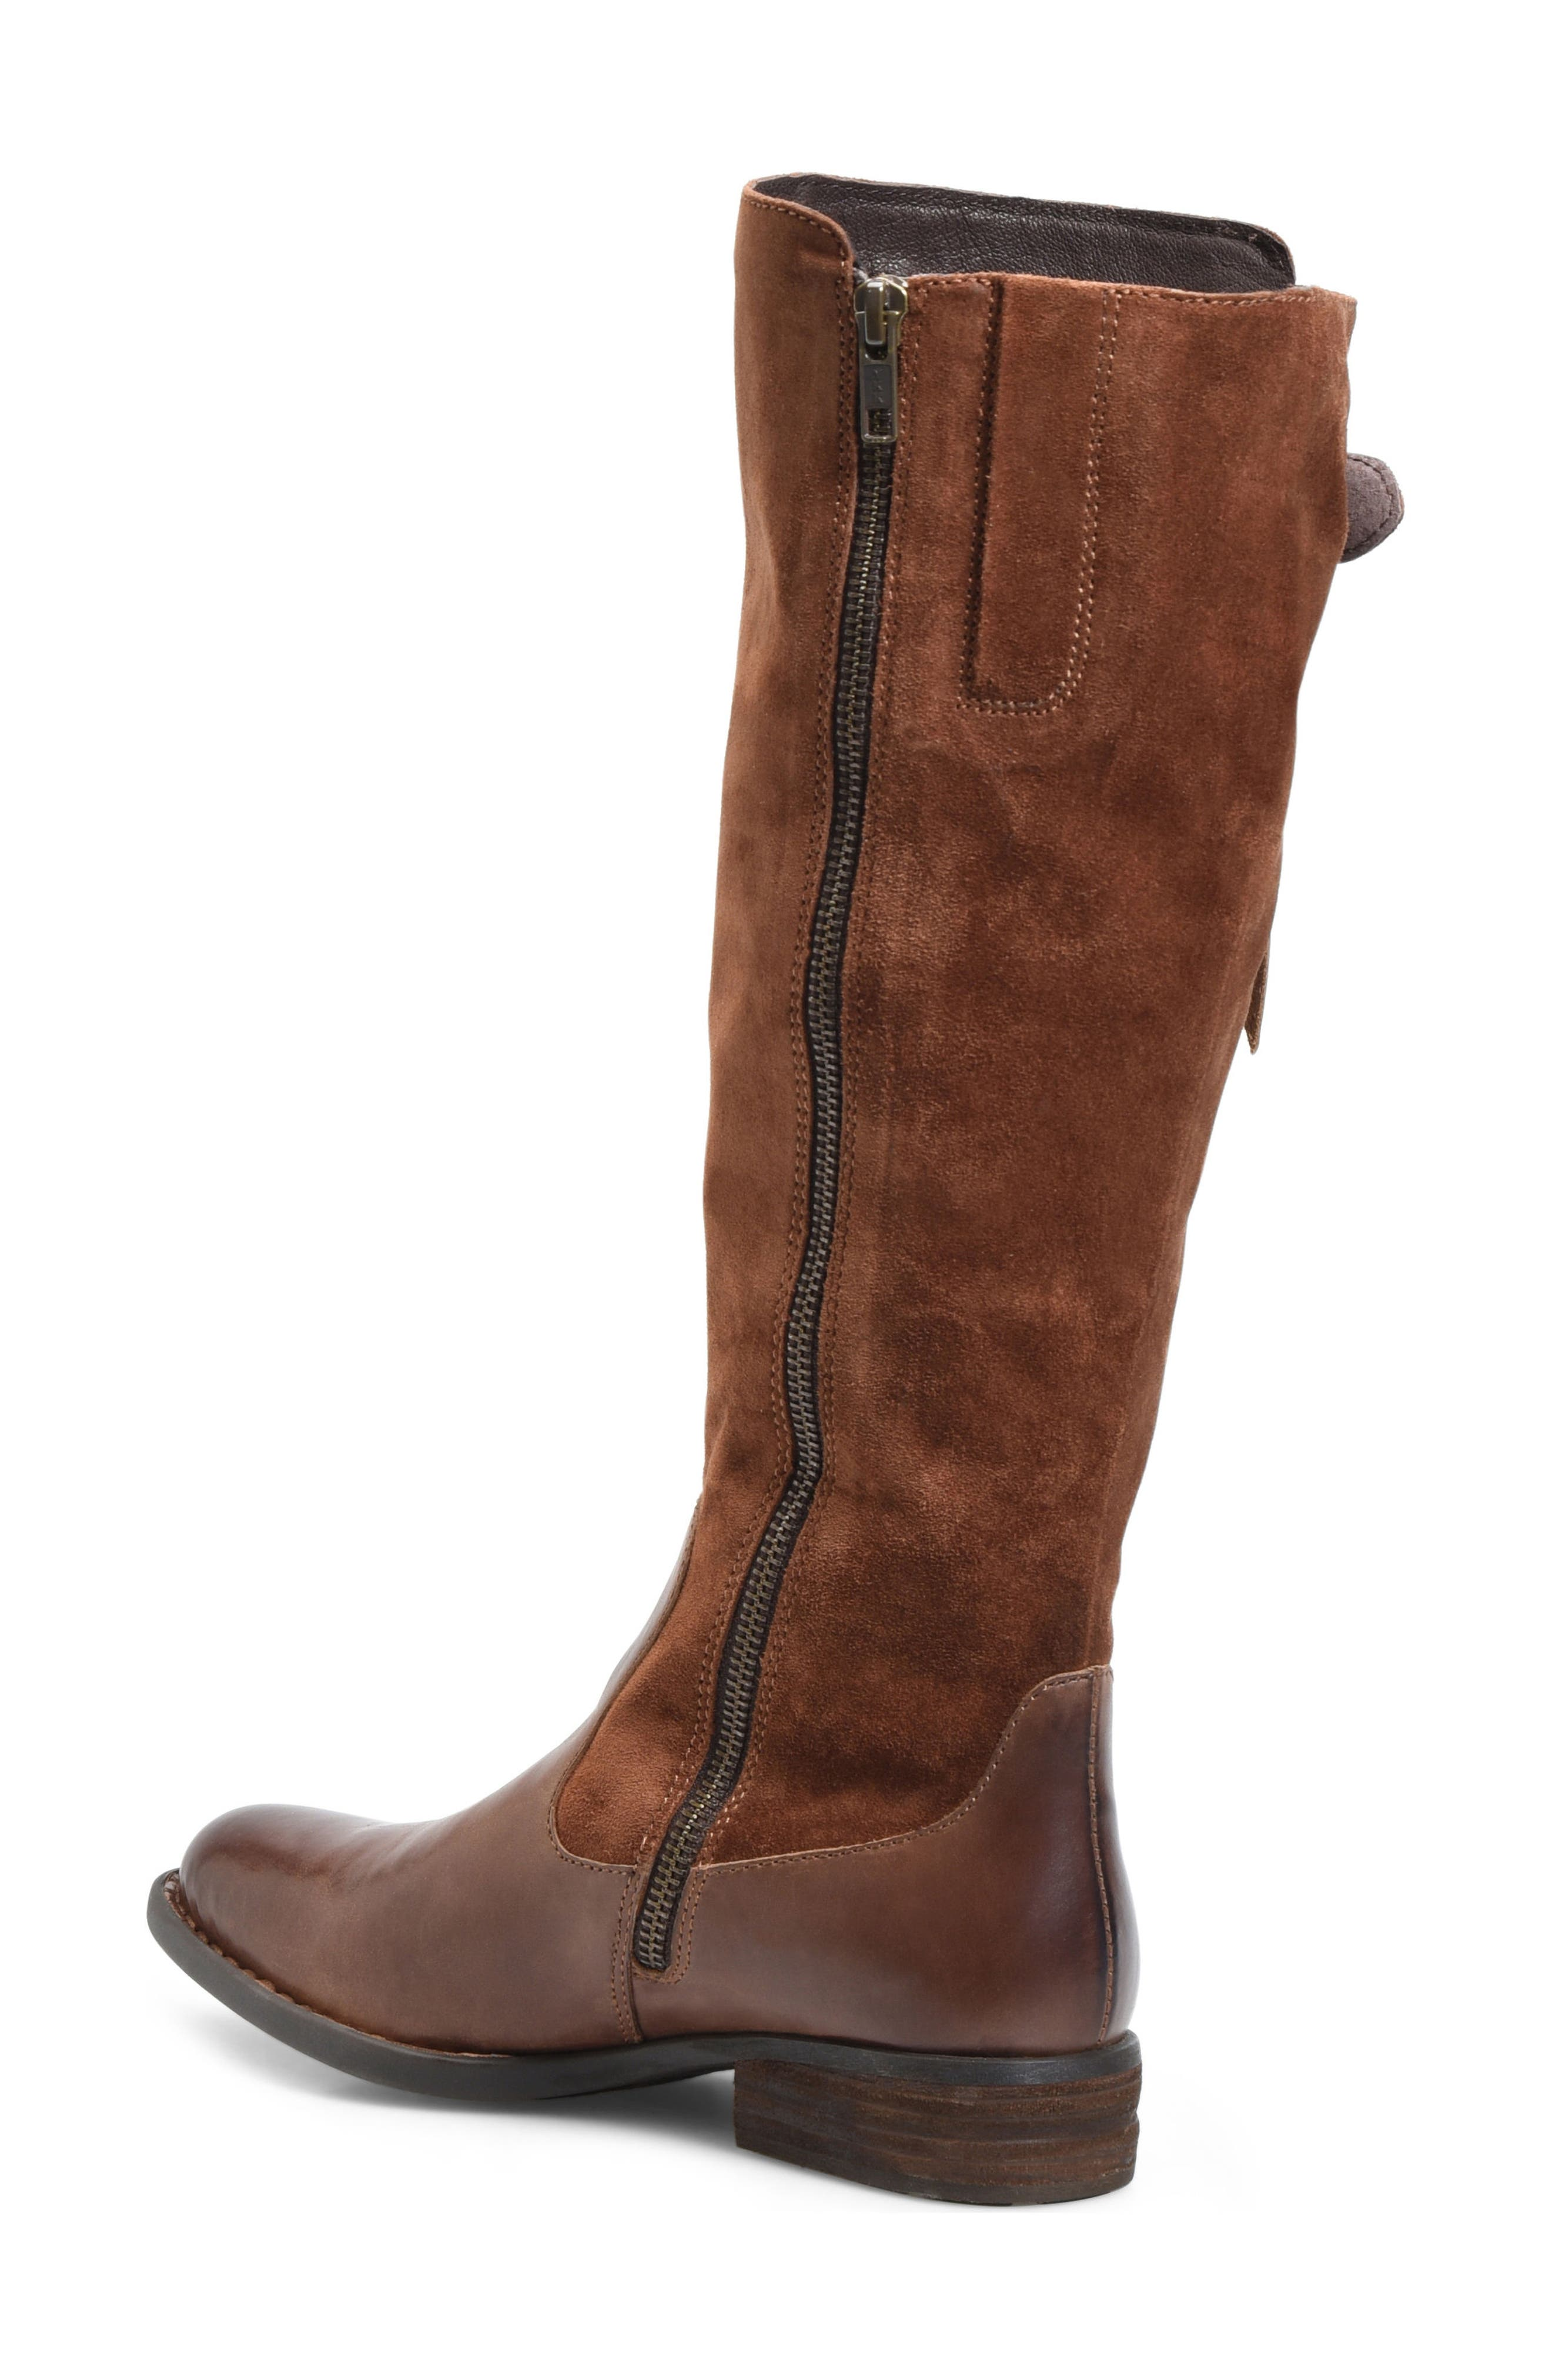 Cook Knee High Boot,                             Alternate thumbnail 2, color,                             Brown/ Rust Combo